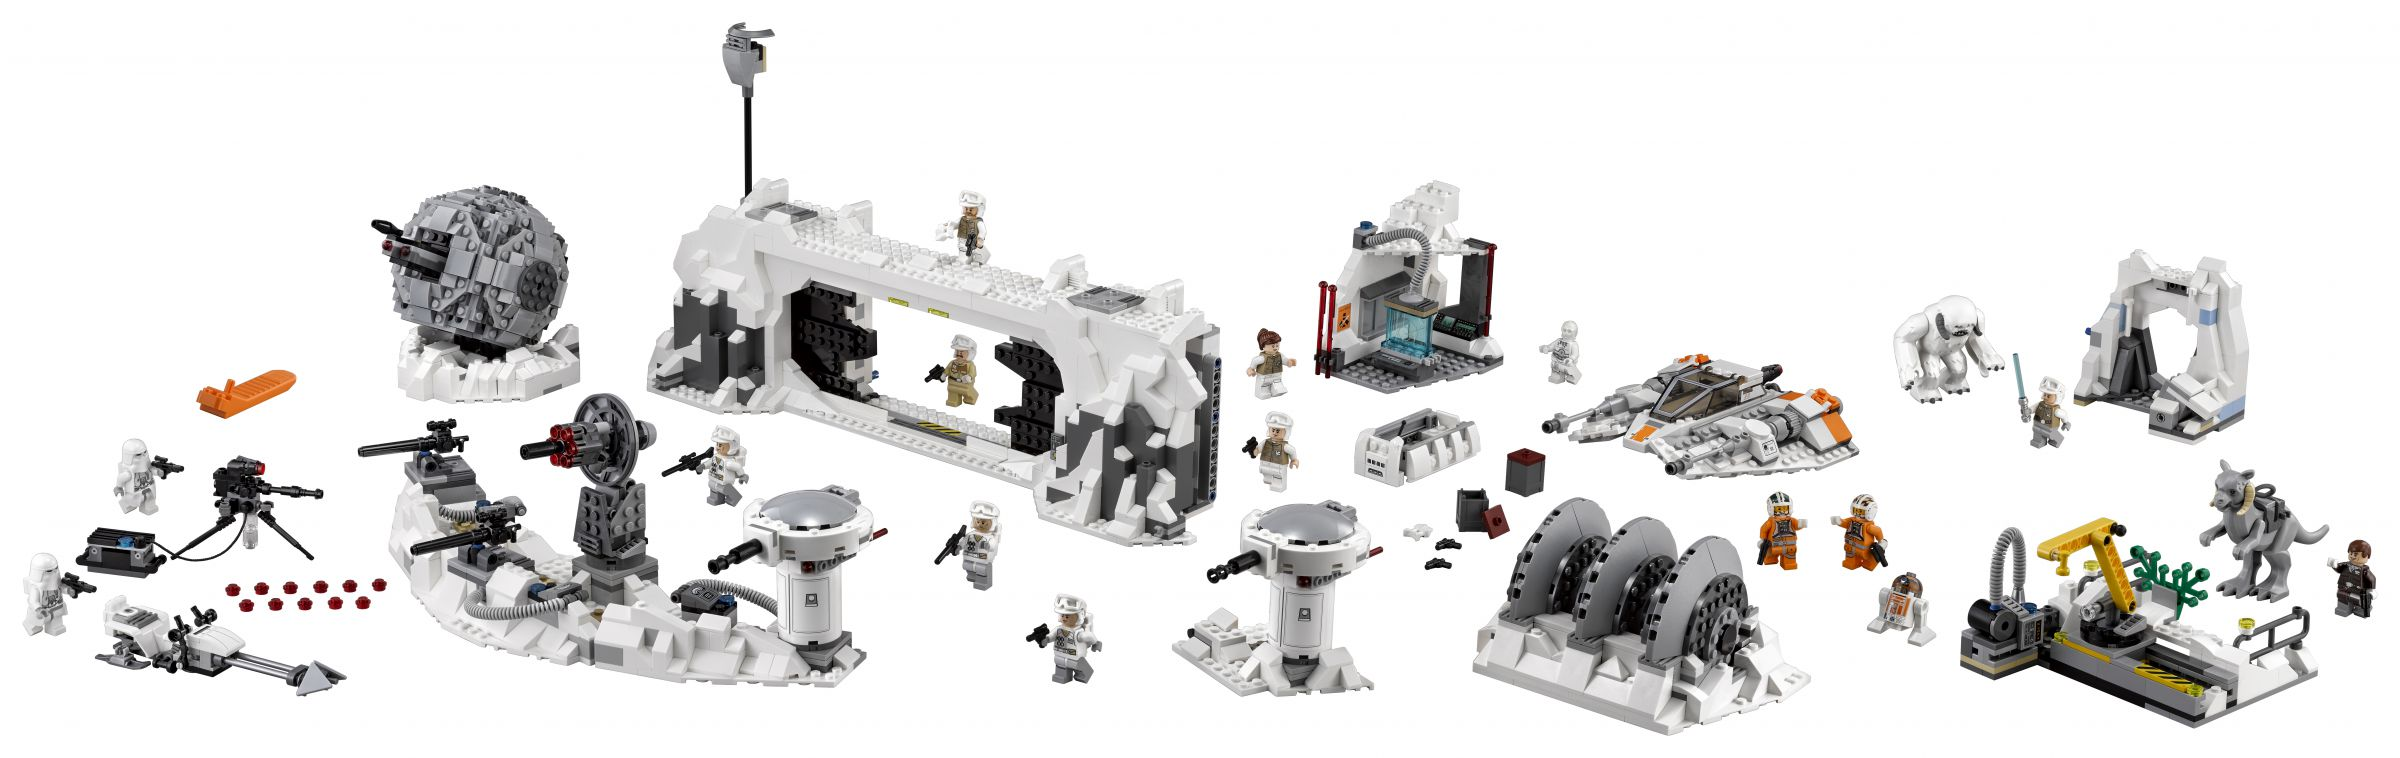 LEGO Star Wars 75098 Angriff auf Hoth™ LEGO-75098-Assault-on-Hoth.jpg